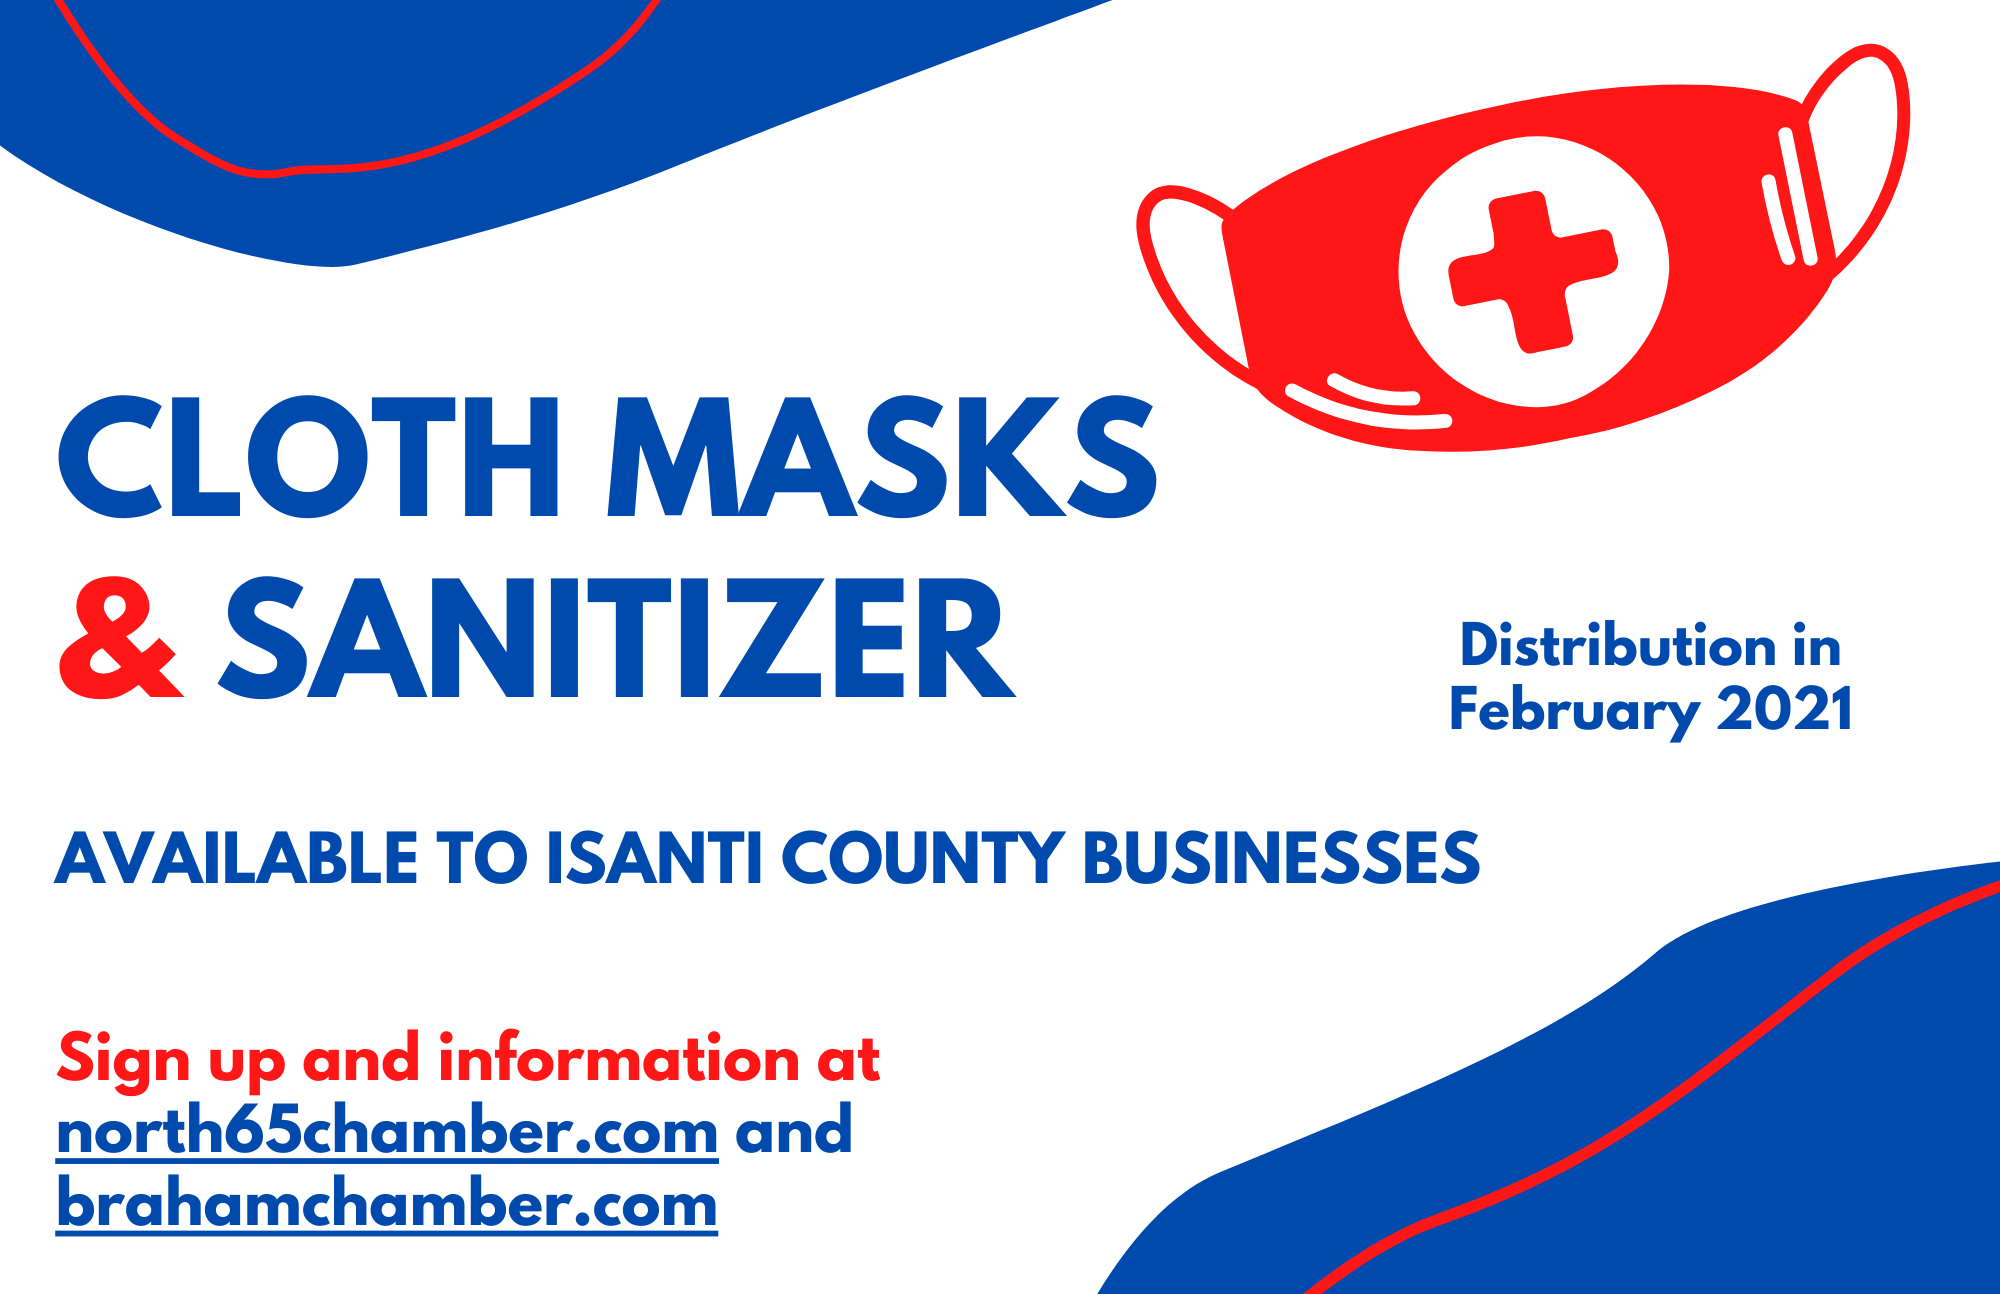 cloth masks and sanitizer available to isanti county businesses